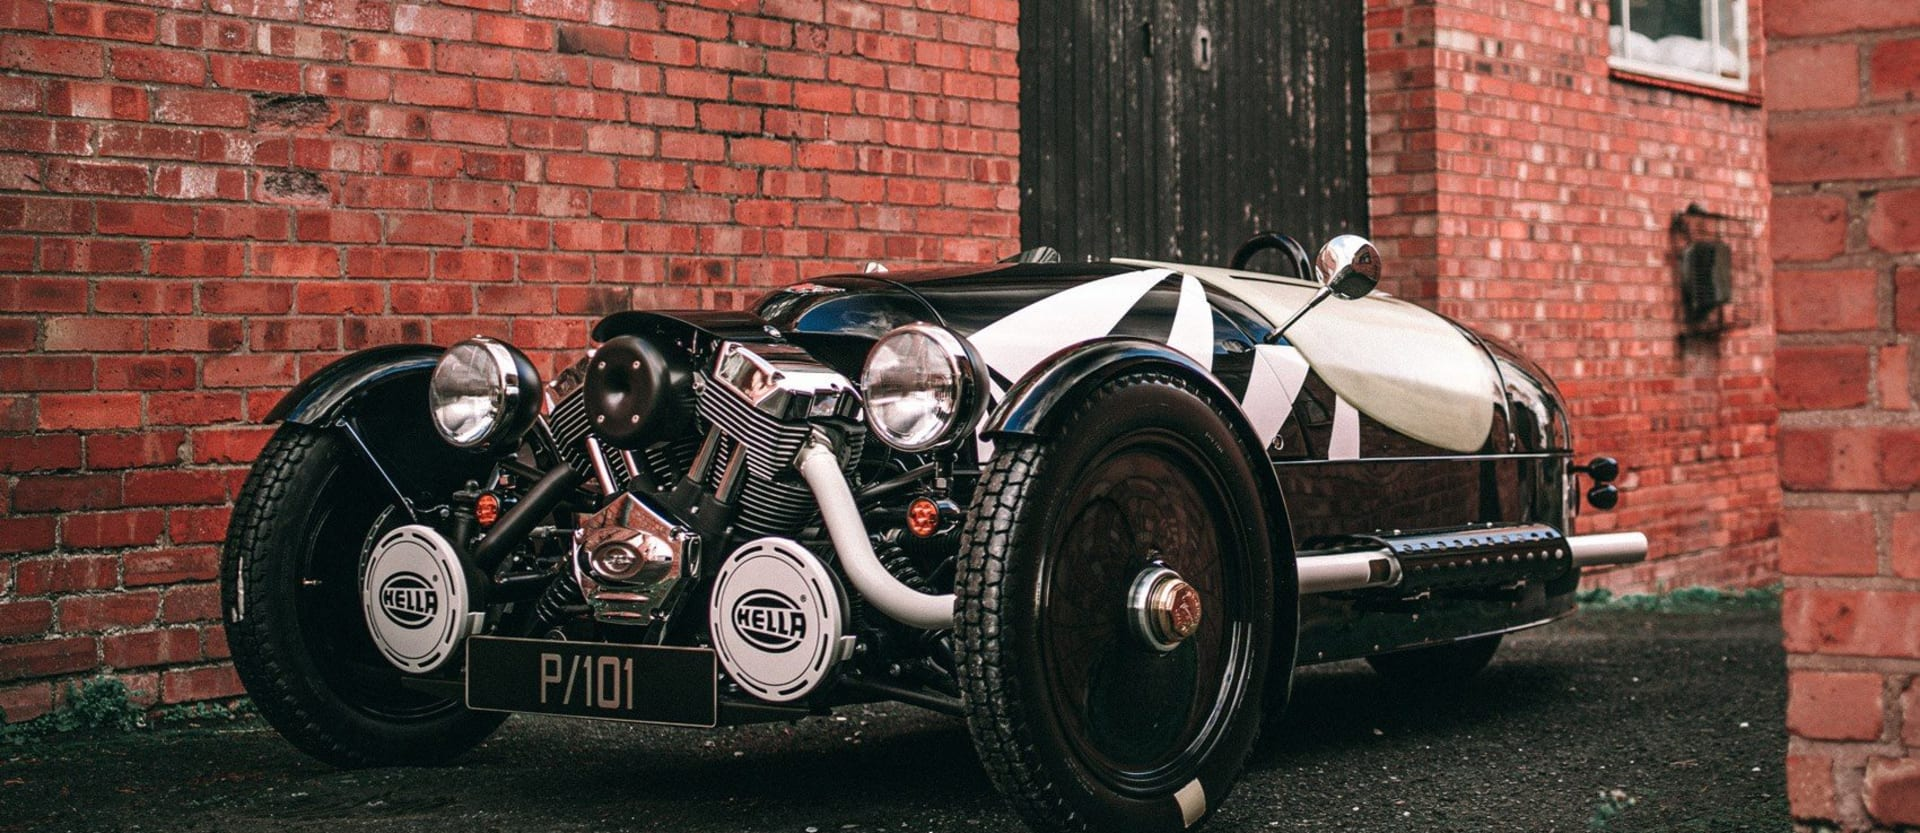 Morgan 3 Wheeler 100 Jpg